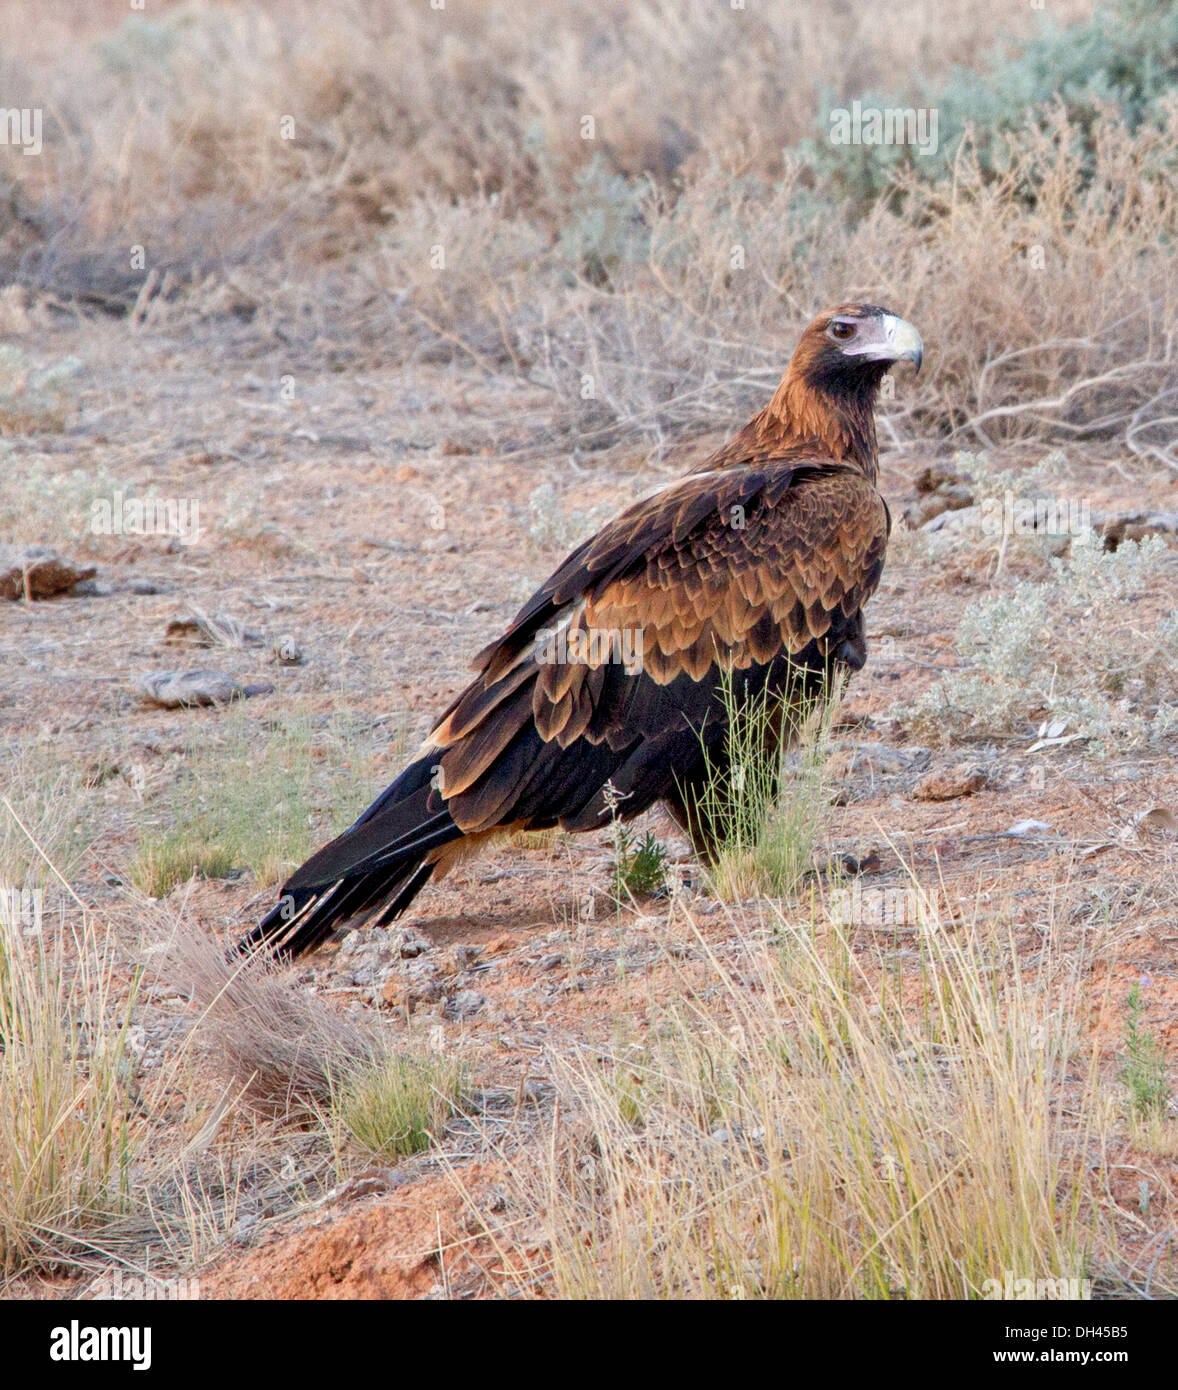 Wedge tailed eagle in the wild among tall grasses on the ground in the South Australian outback - Stock Image